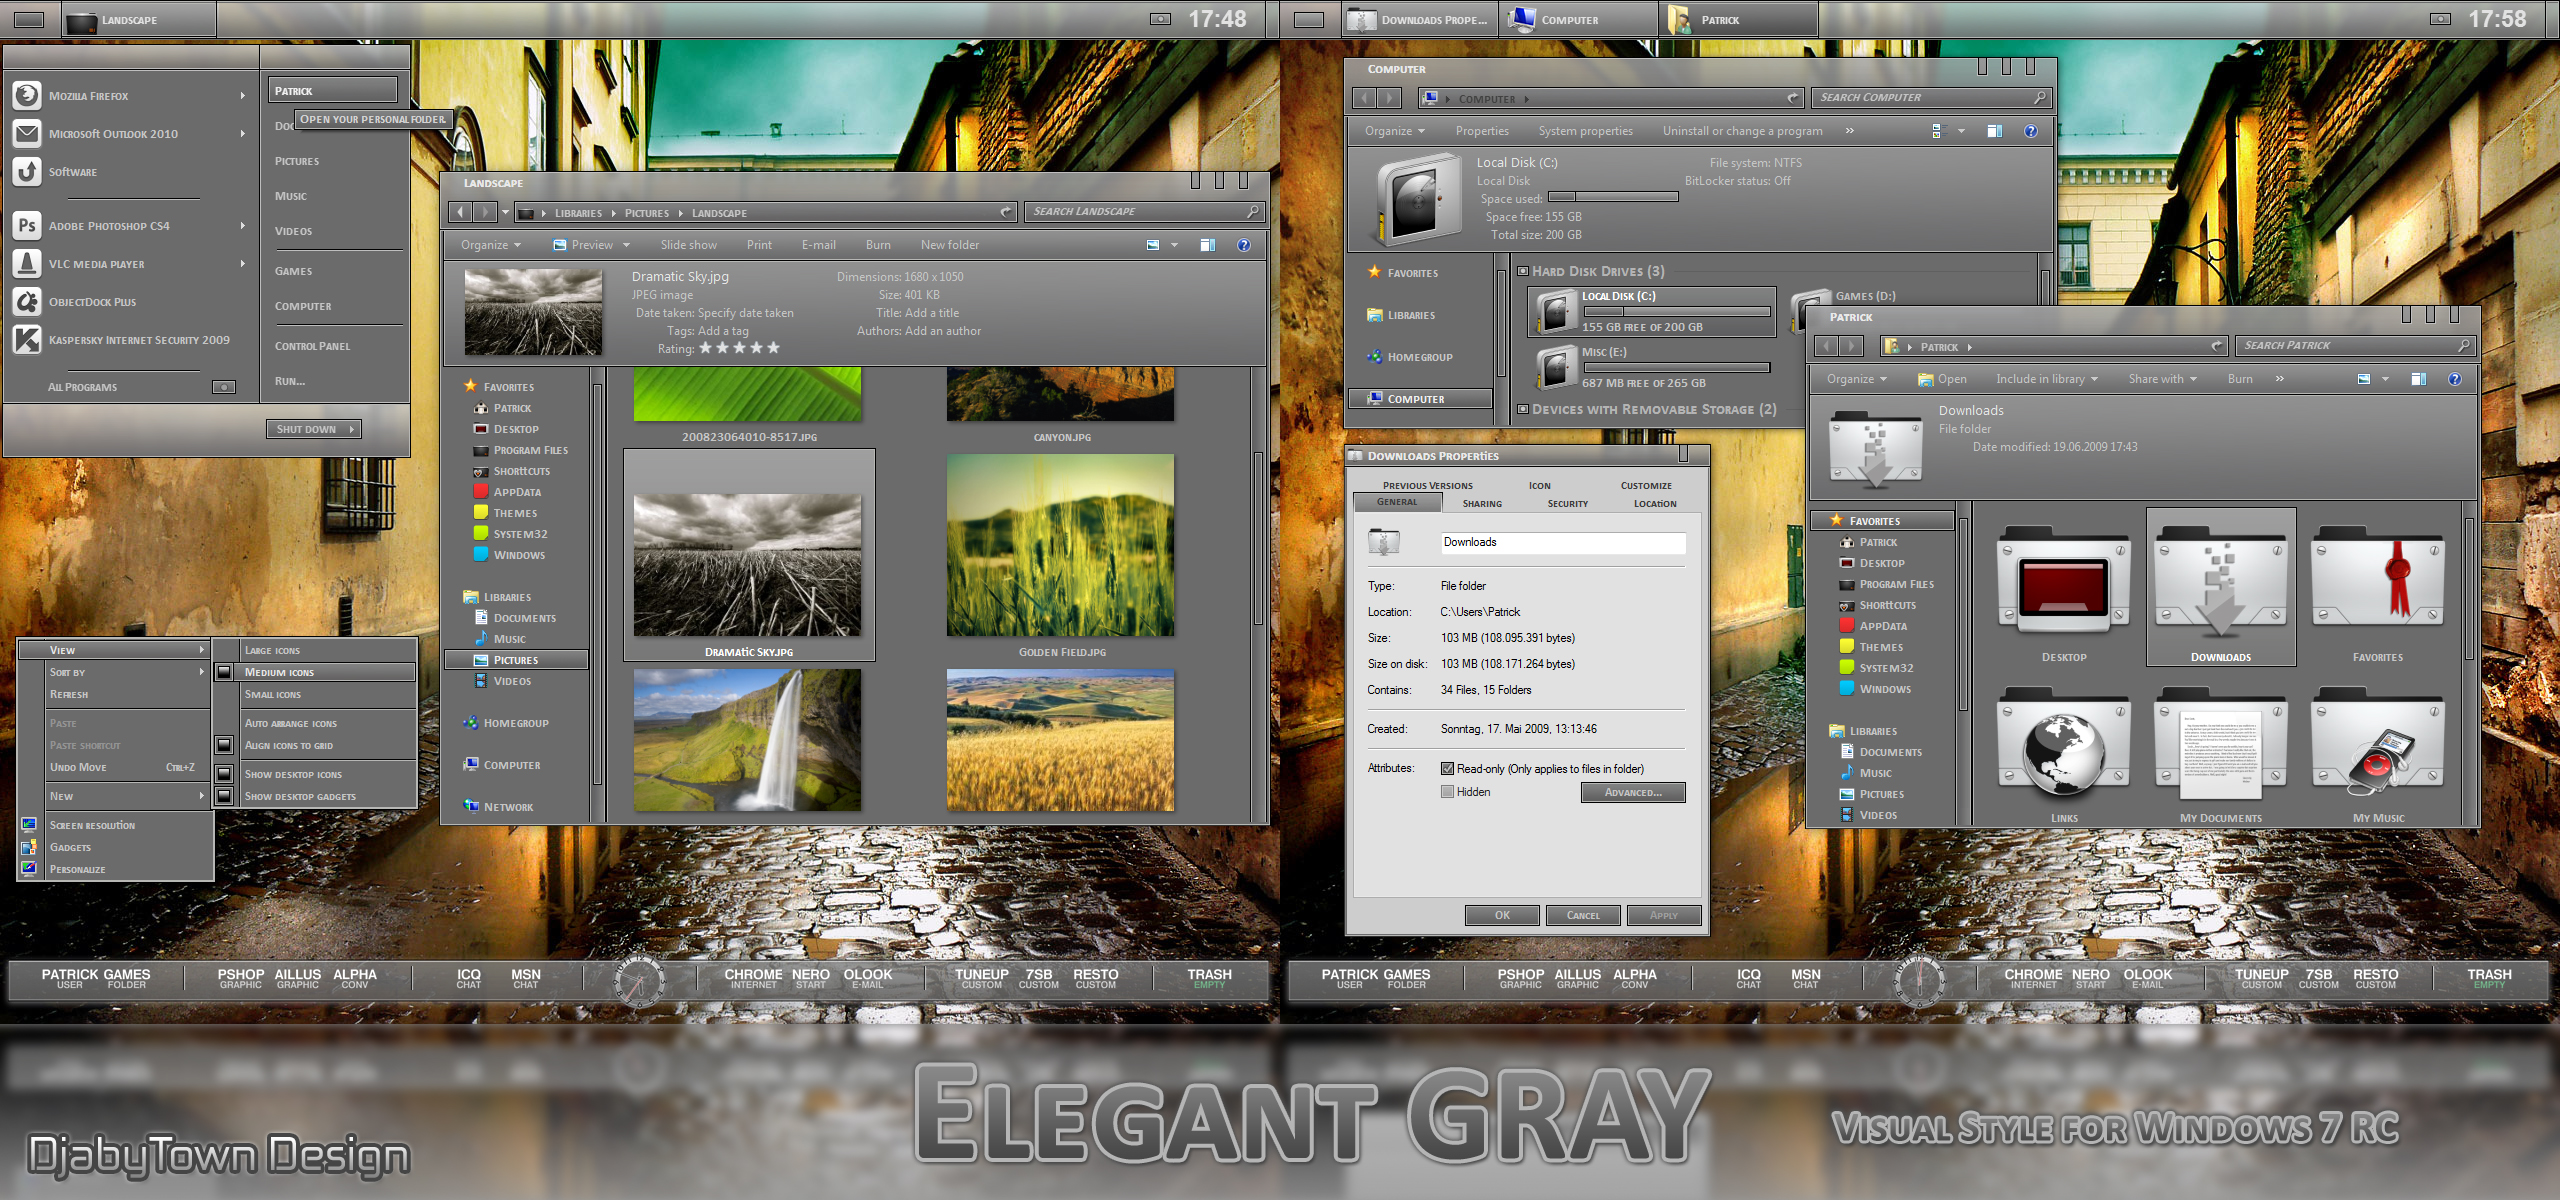 Elegant GRAY Visual Style for Windows 7 @ 50+ Stunning Windows 7 Desktop Themes